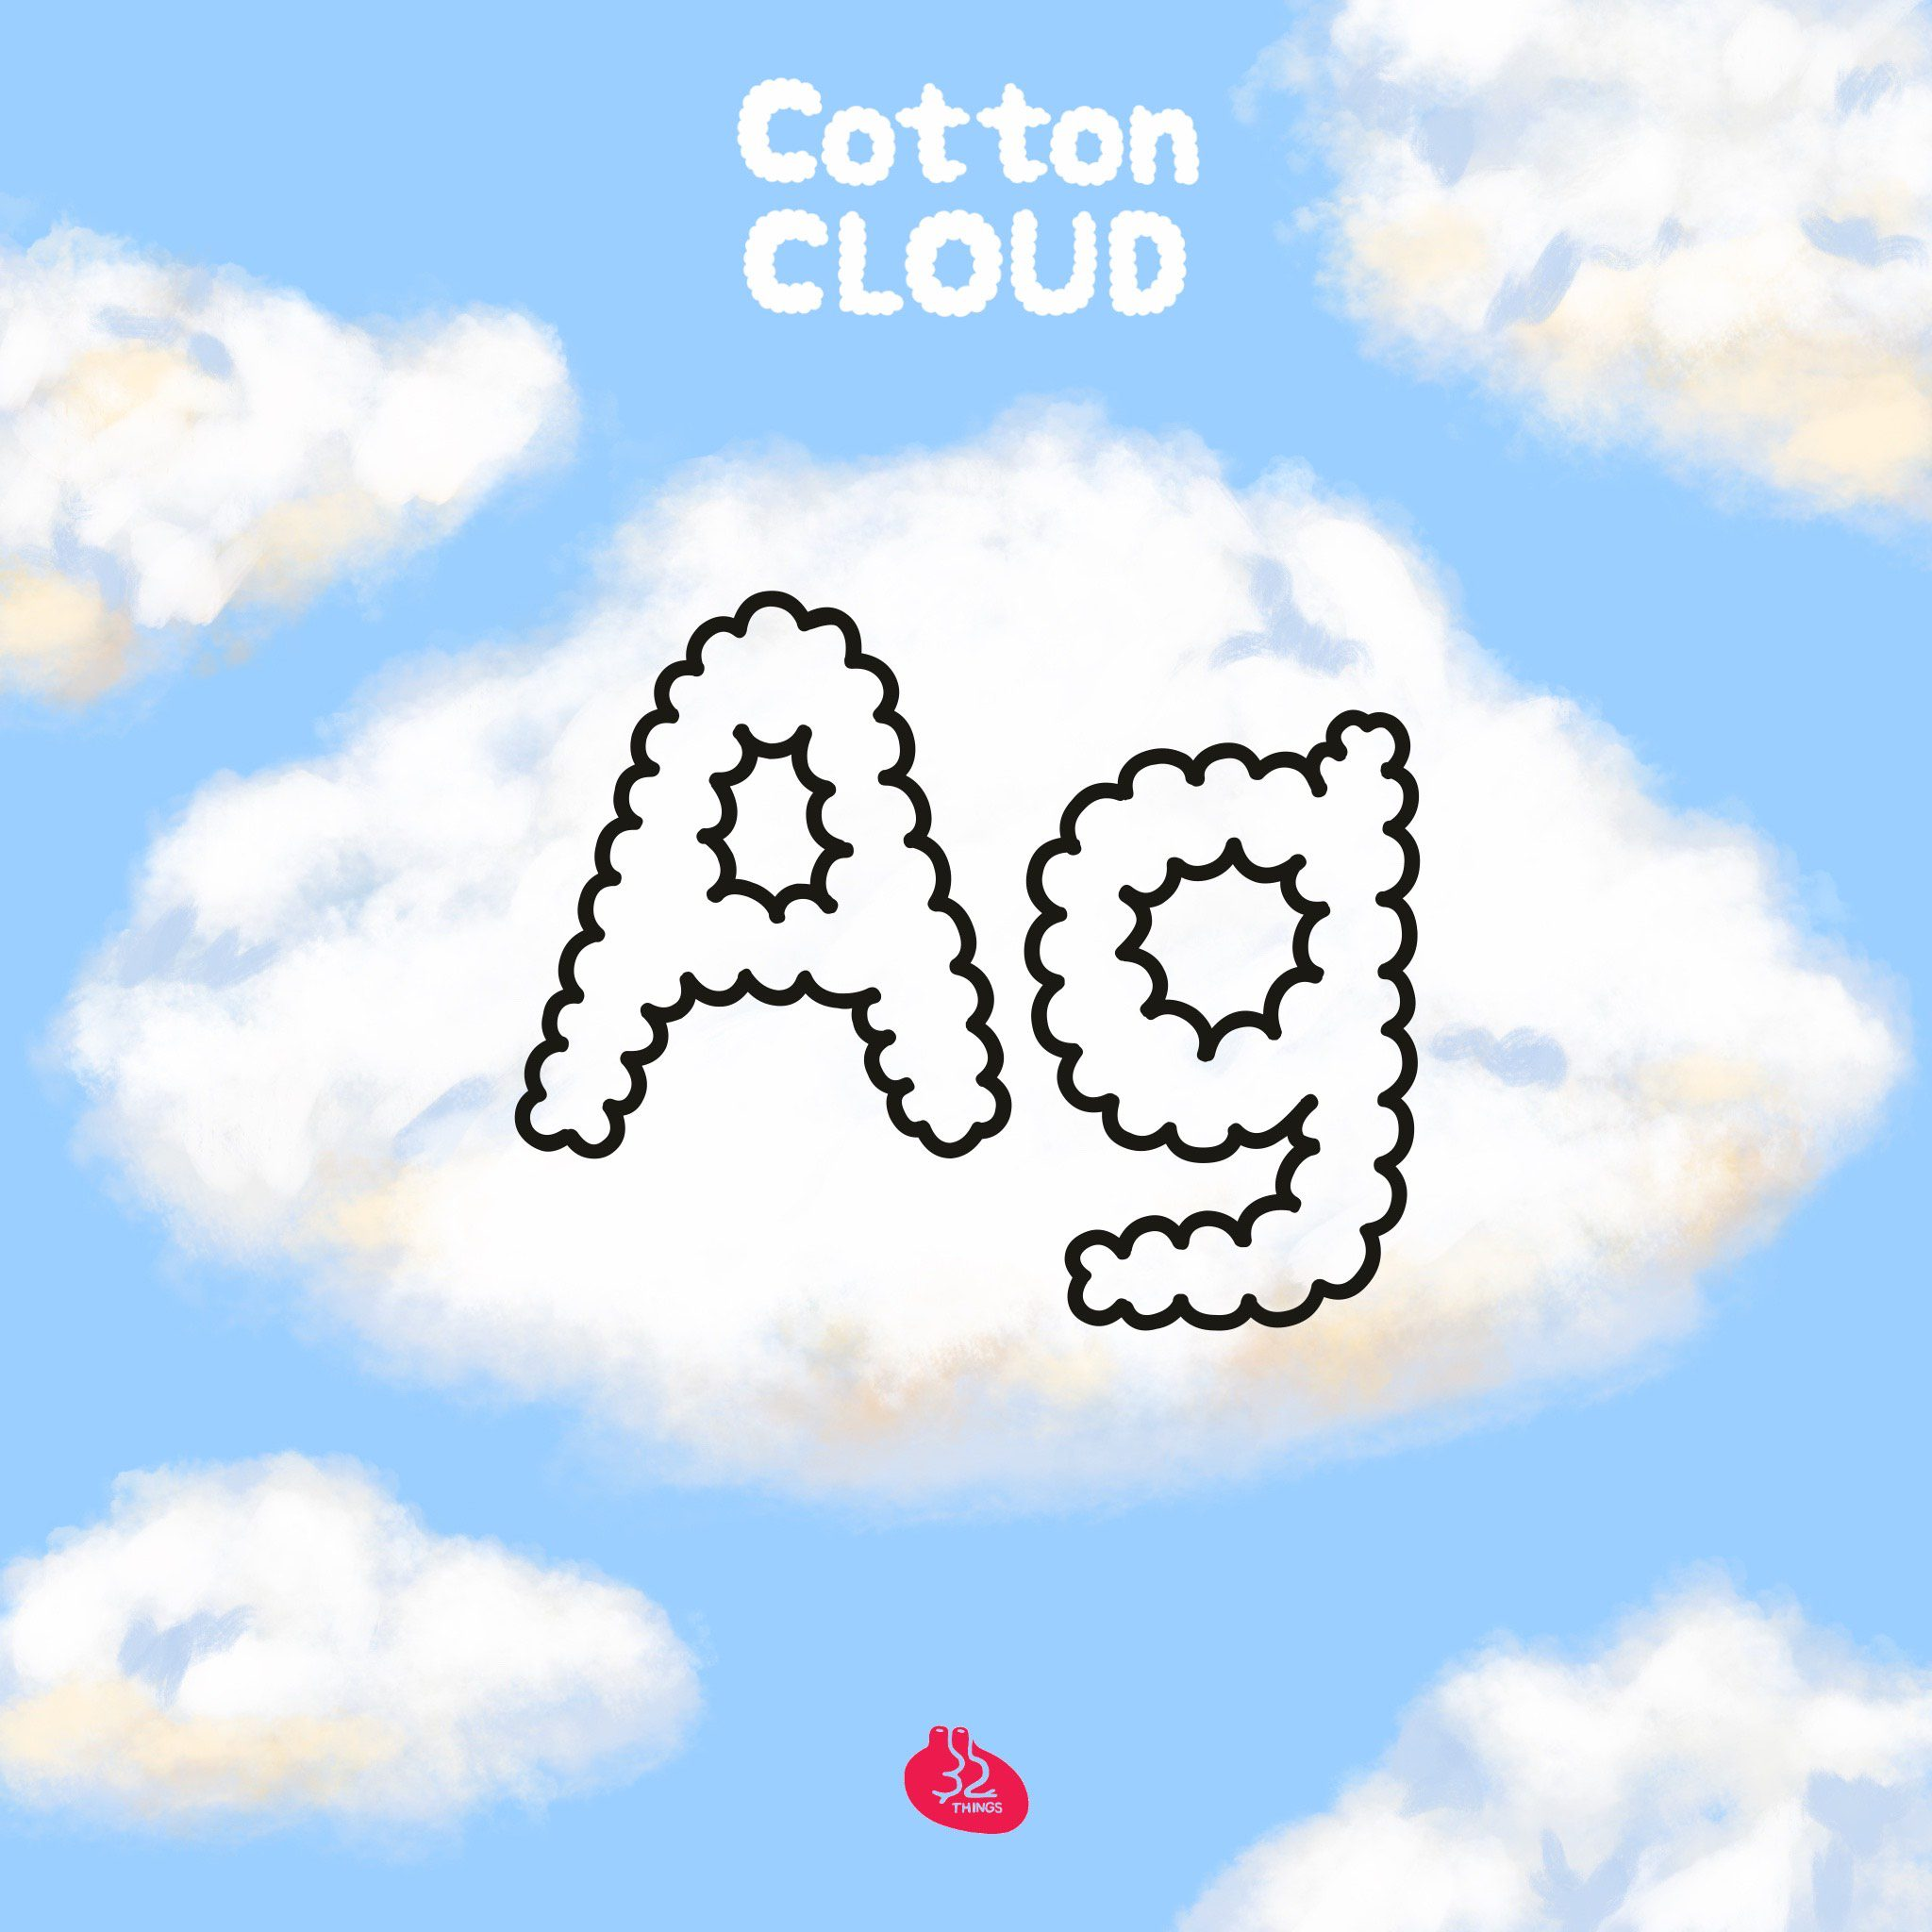 32 THINGS | FONT (Cotton CLOUD)